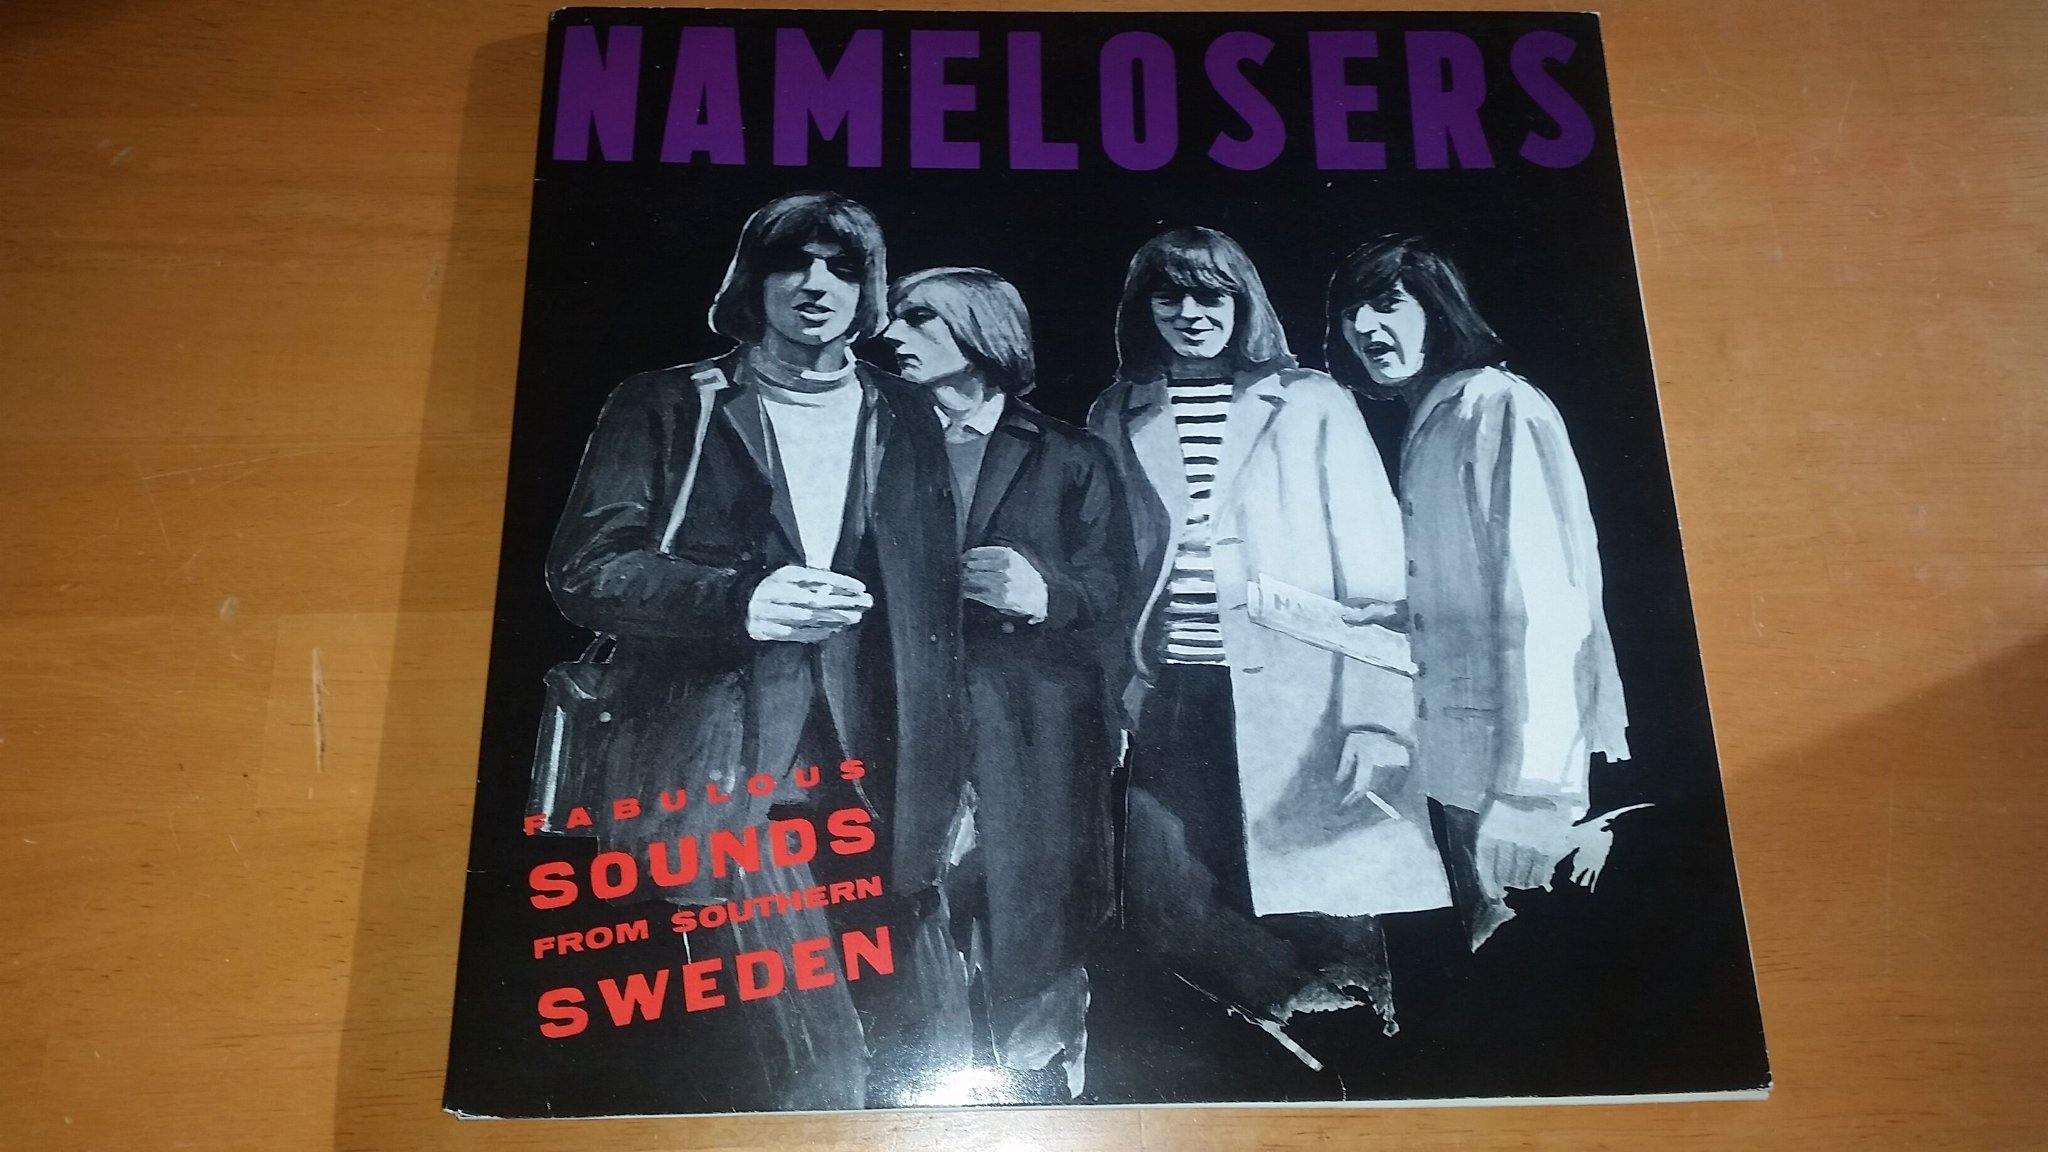 NAMELOSERS - Fabulous sounds from southern Sweden, Gatefold LP